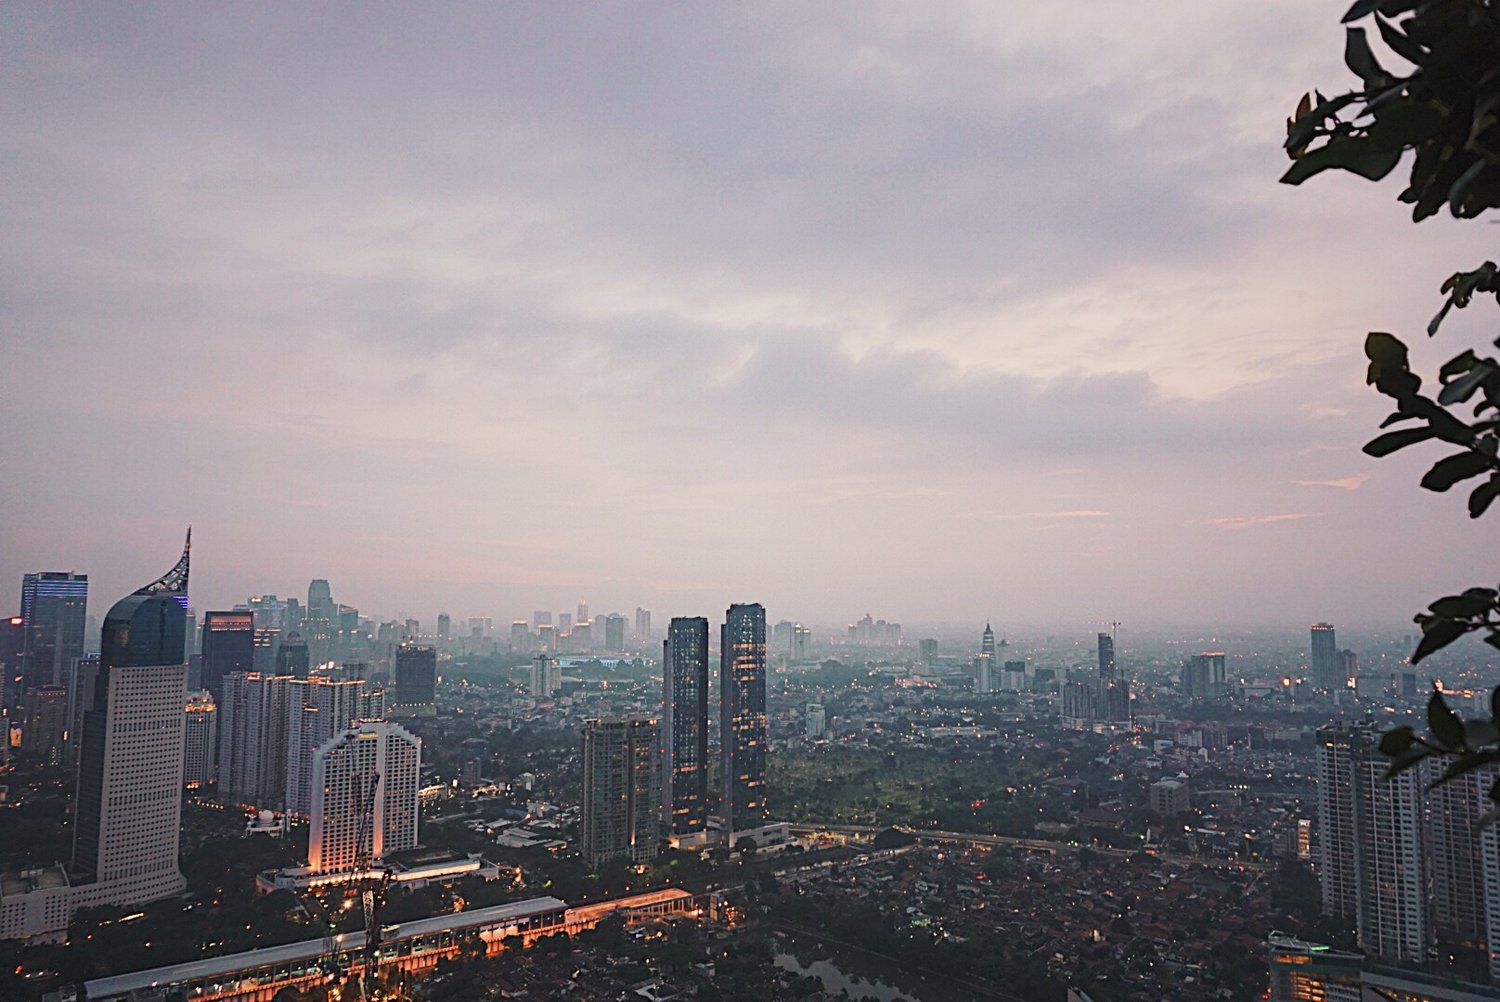 A view from one of the rooftop bars in Jakarta.